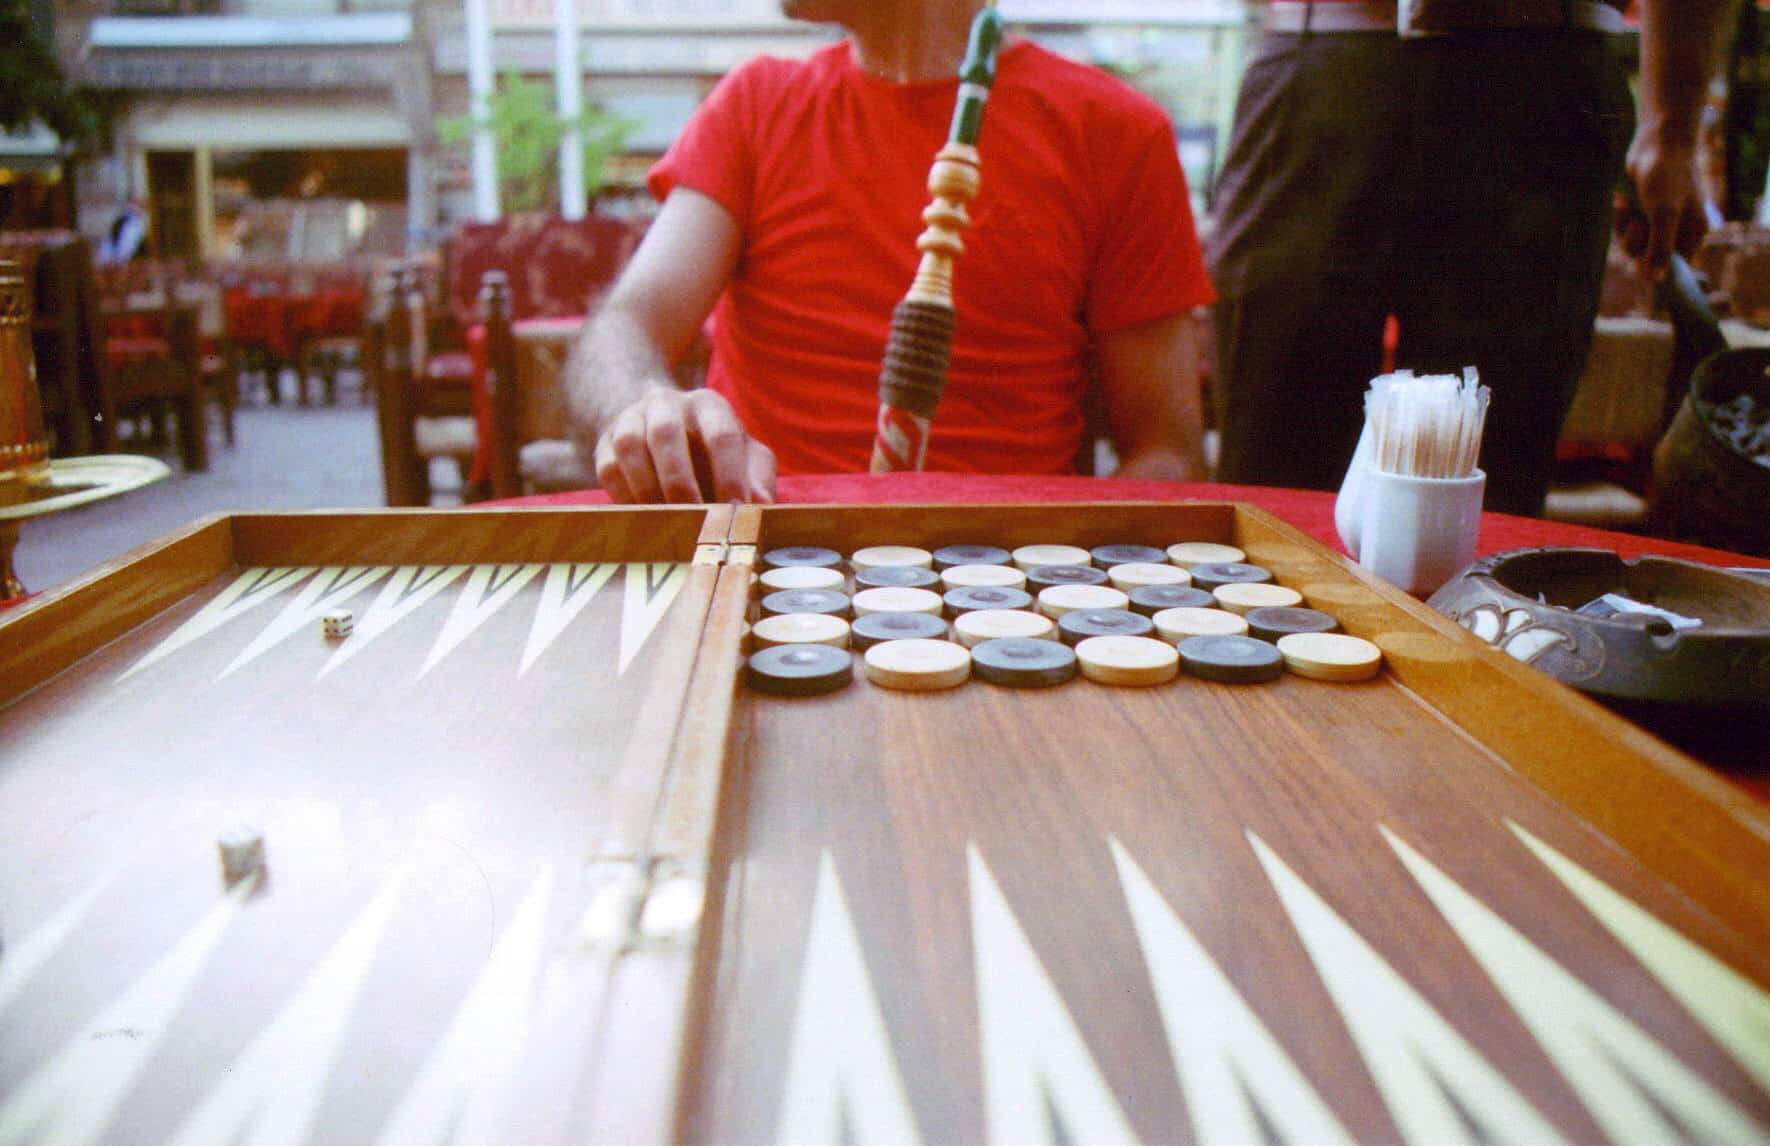 2008: Nargile, backgammon, and new friends. (my istanbul past)